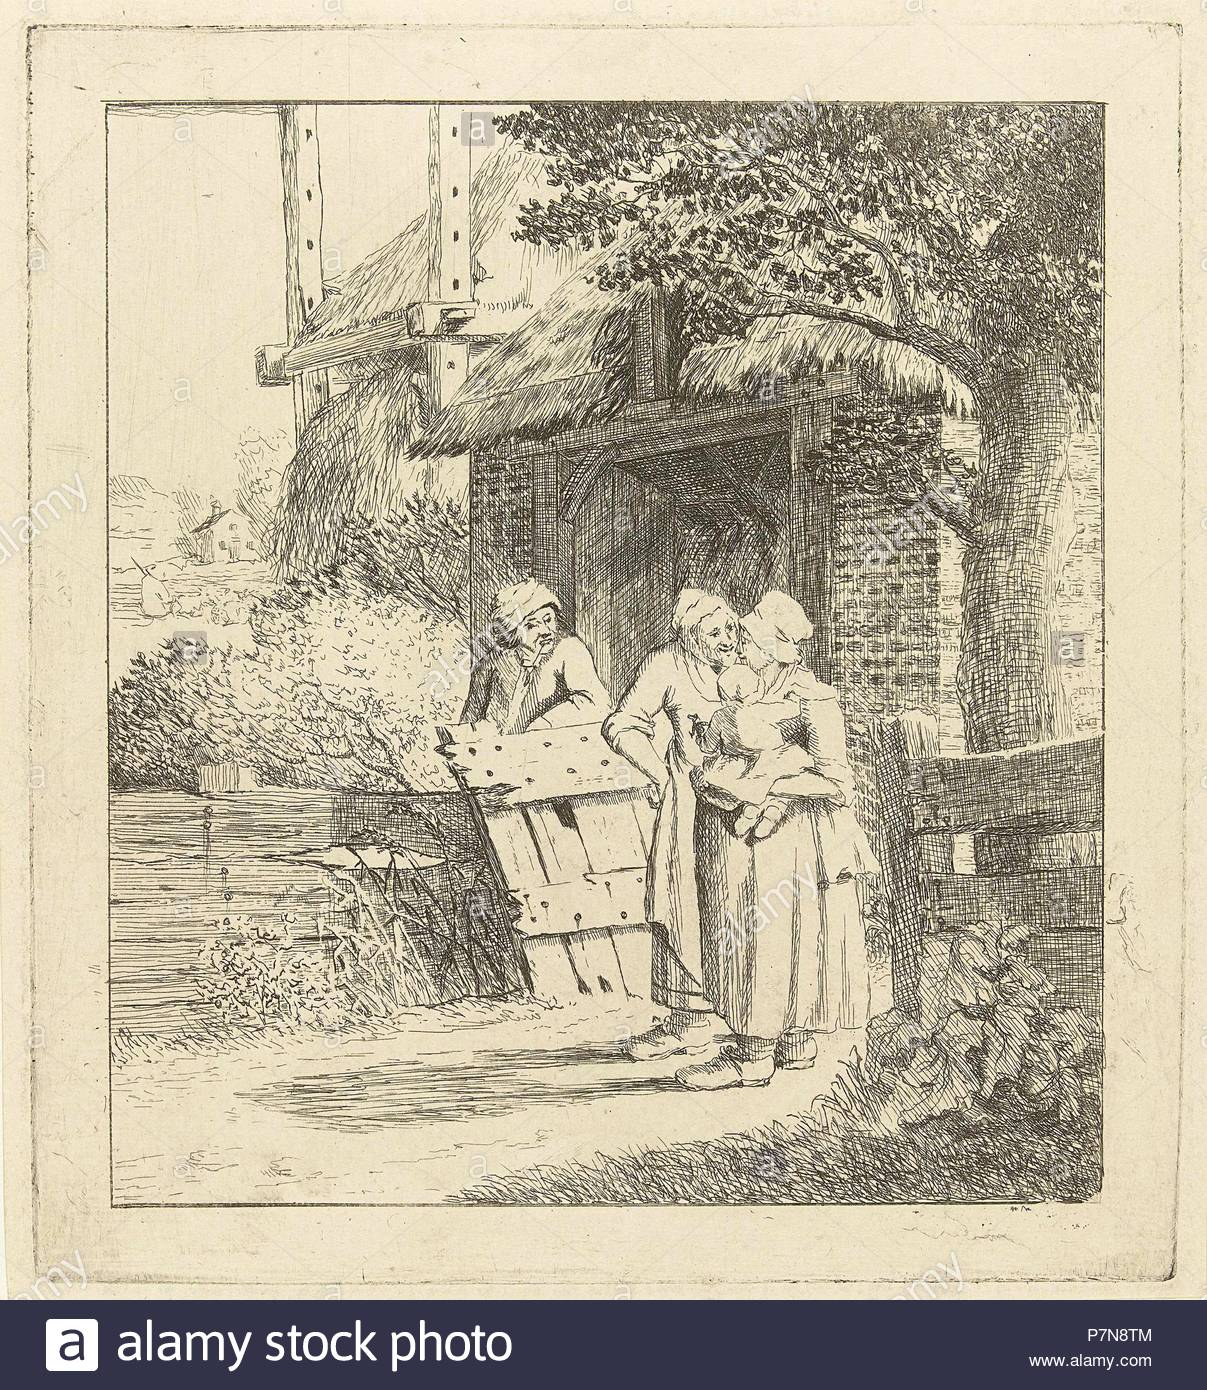 Two women and a man on a farm, print maker: Marie Lambertine Coclers, 1776 - 1815. - Stock Image